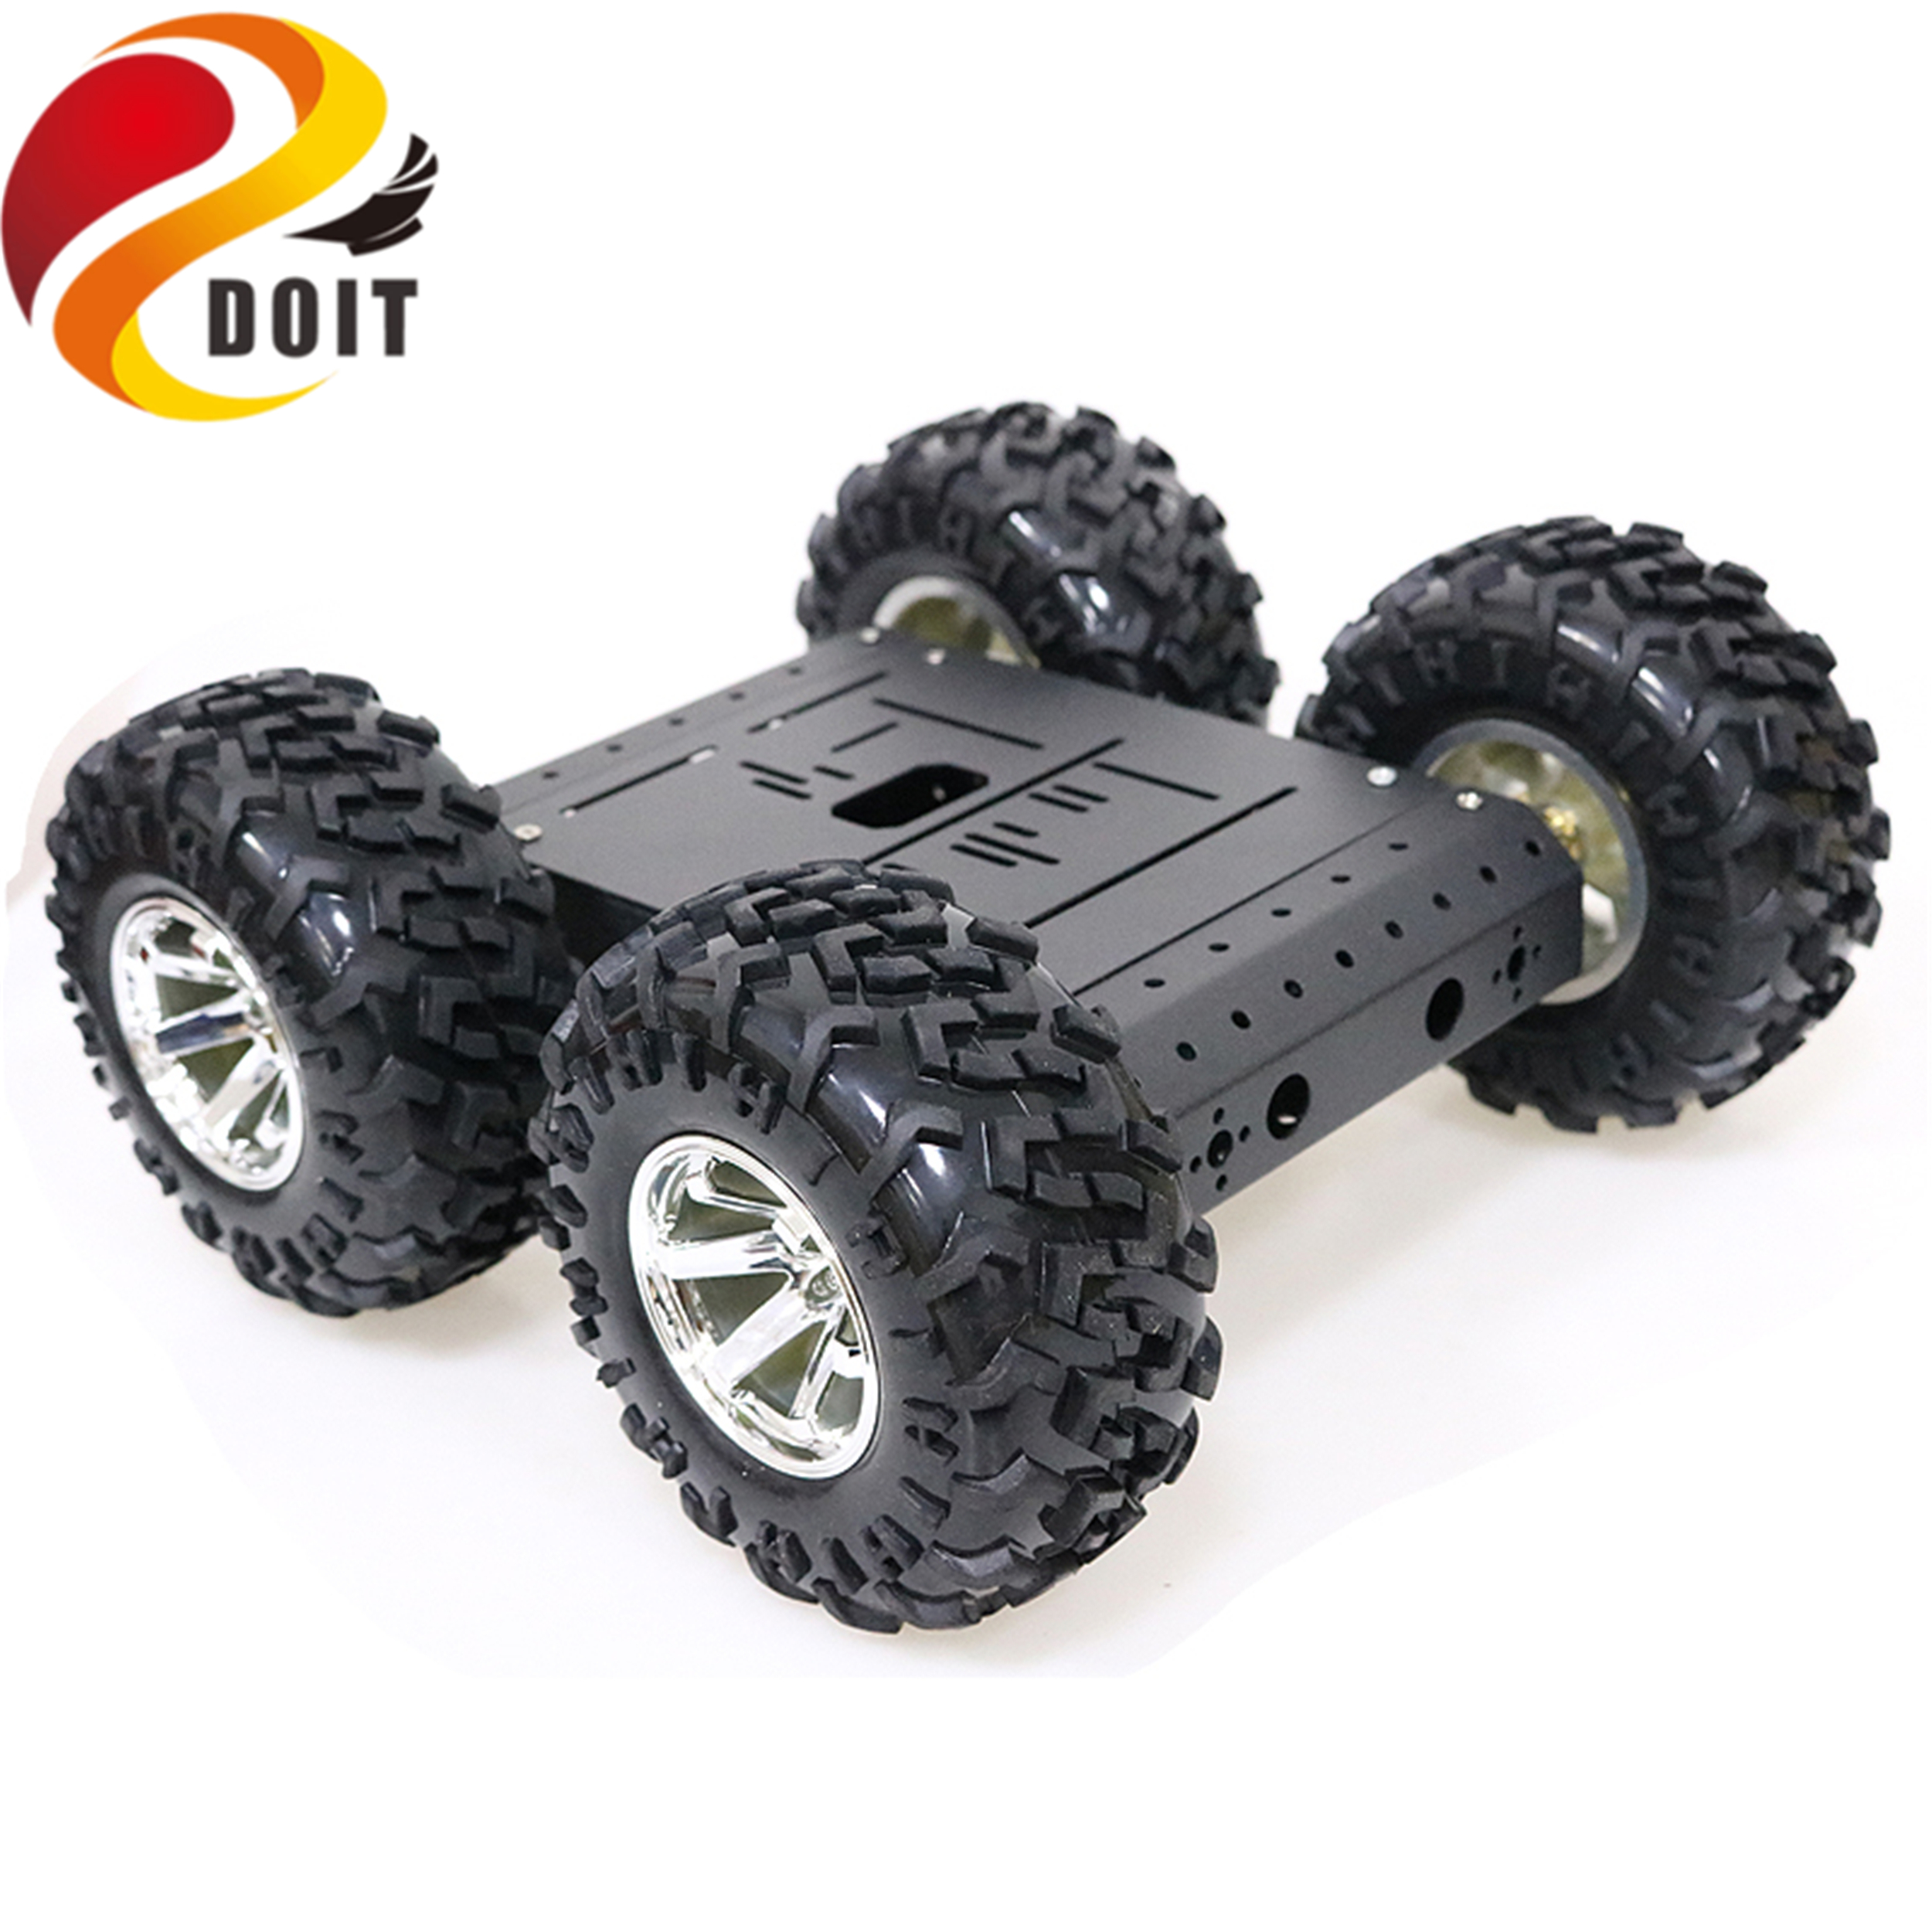 SZDOIT 4WD Metal Smart Robot Car Chassis Kit 130mm Rubber Wheel High Torque DC Motor Heavy Load DIY For Arduino Education DIY